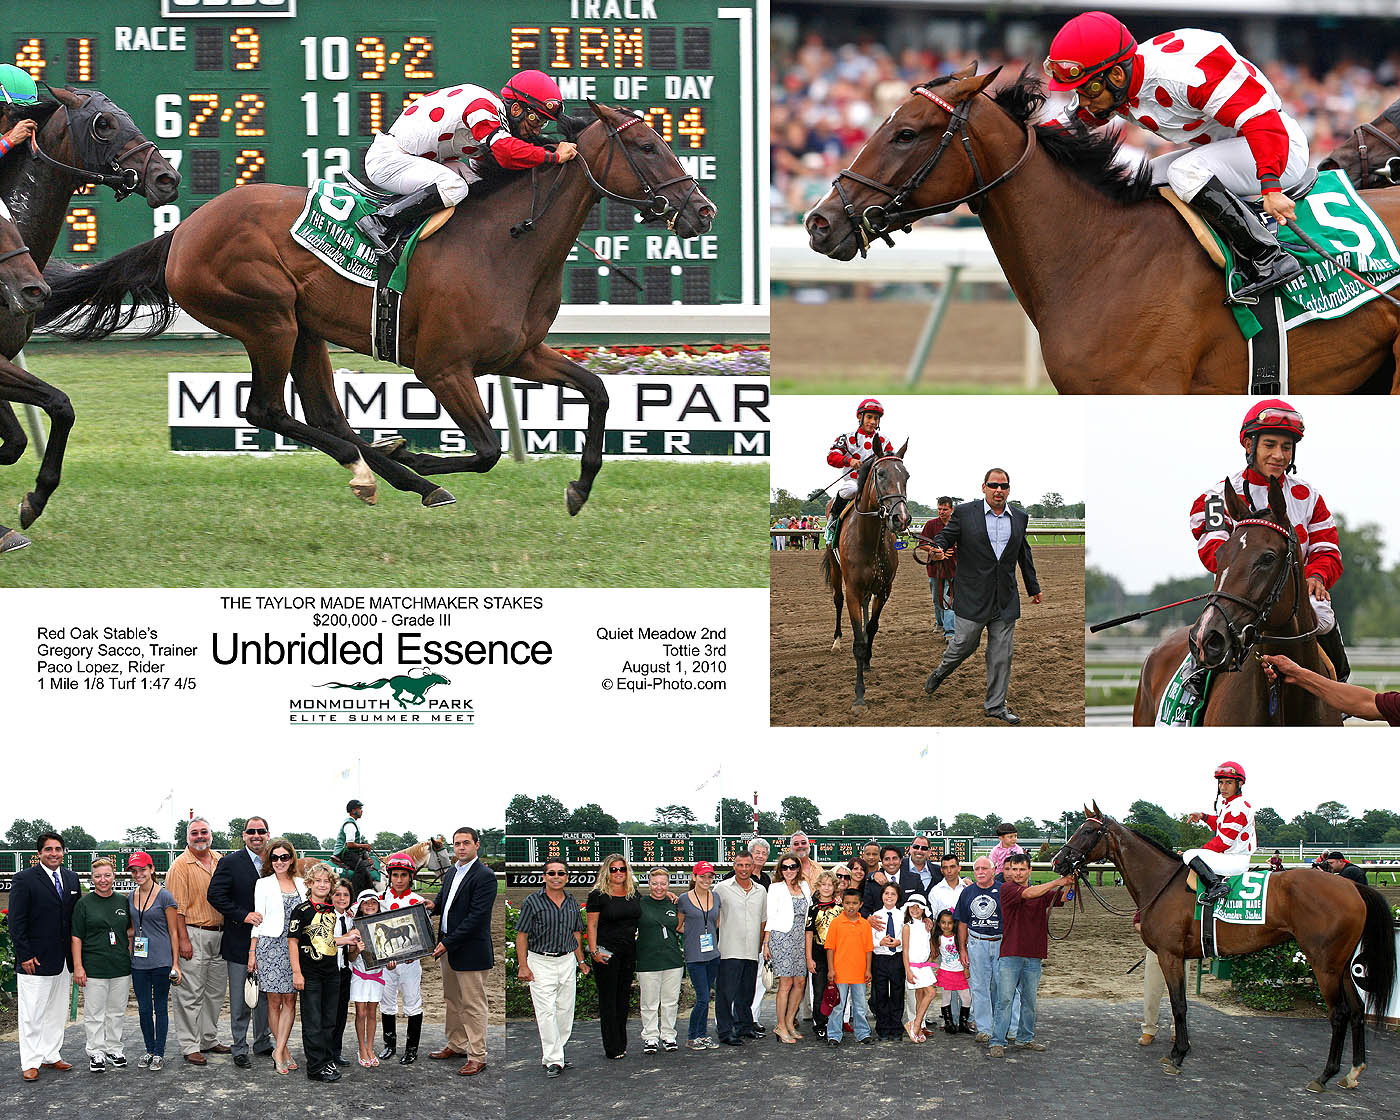 The 6in1 Stake Photo is available for winners of Stakes Races.  Sizes available are 16x20 and 20x24.